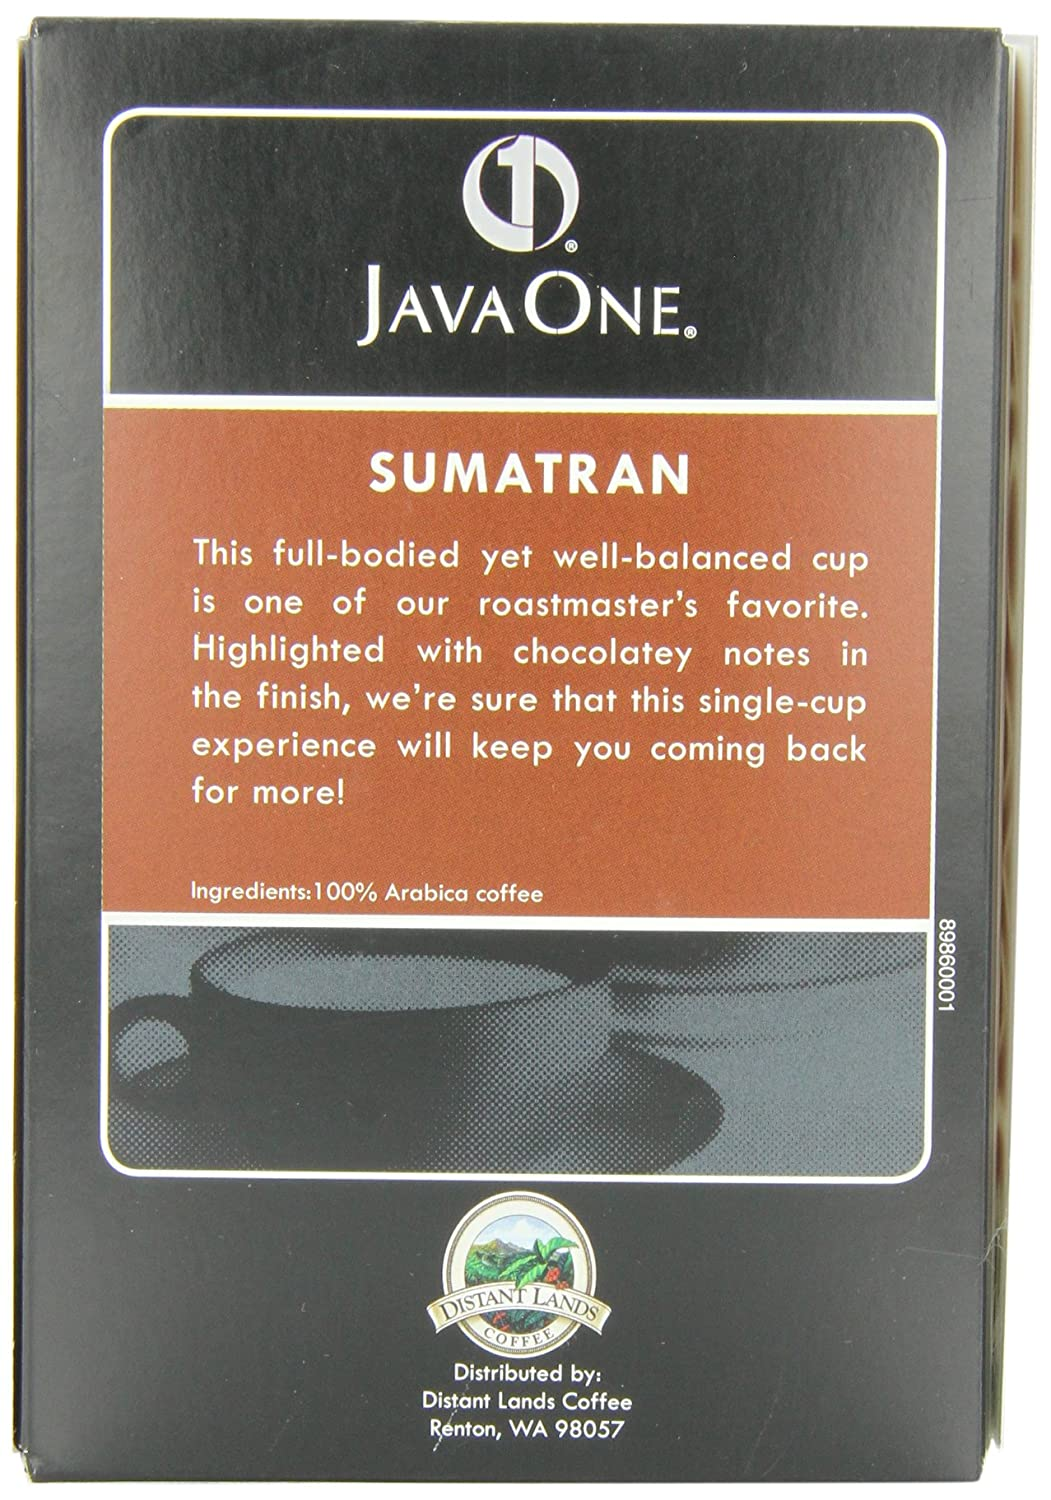 Java One Sumatra Coffee 14 Count Pods Pack Of 6 Amazon Com Grocery Gourmet Food